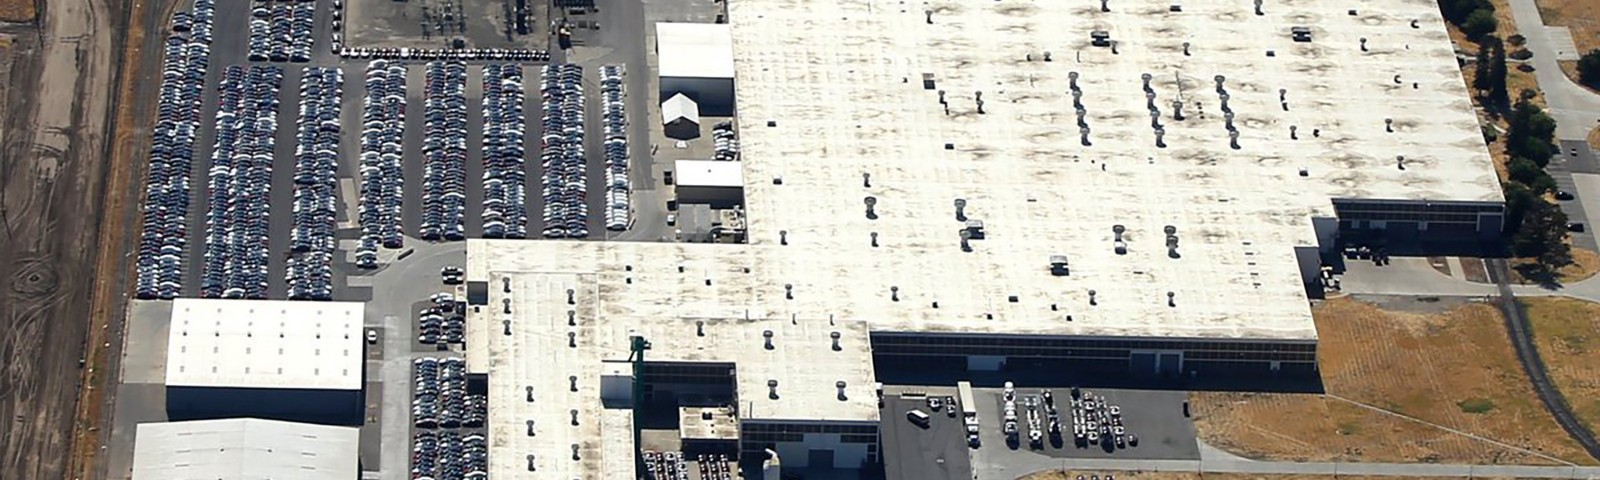 Unraveling a Tesla Mystery: Lots (and Lots) of Parked Cars - The New on